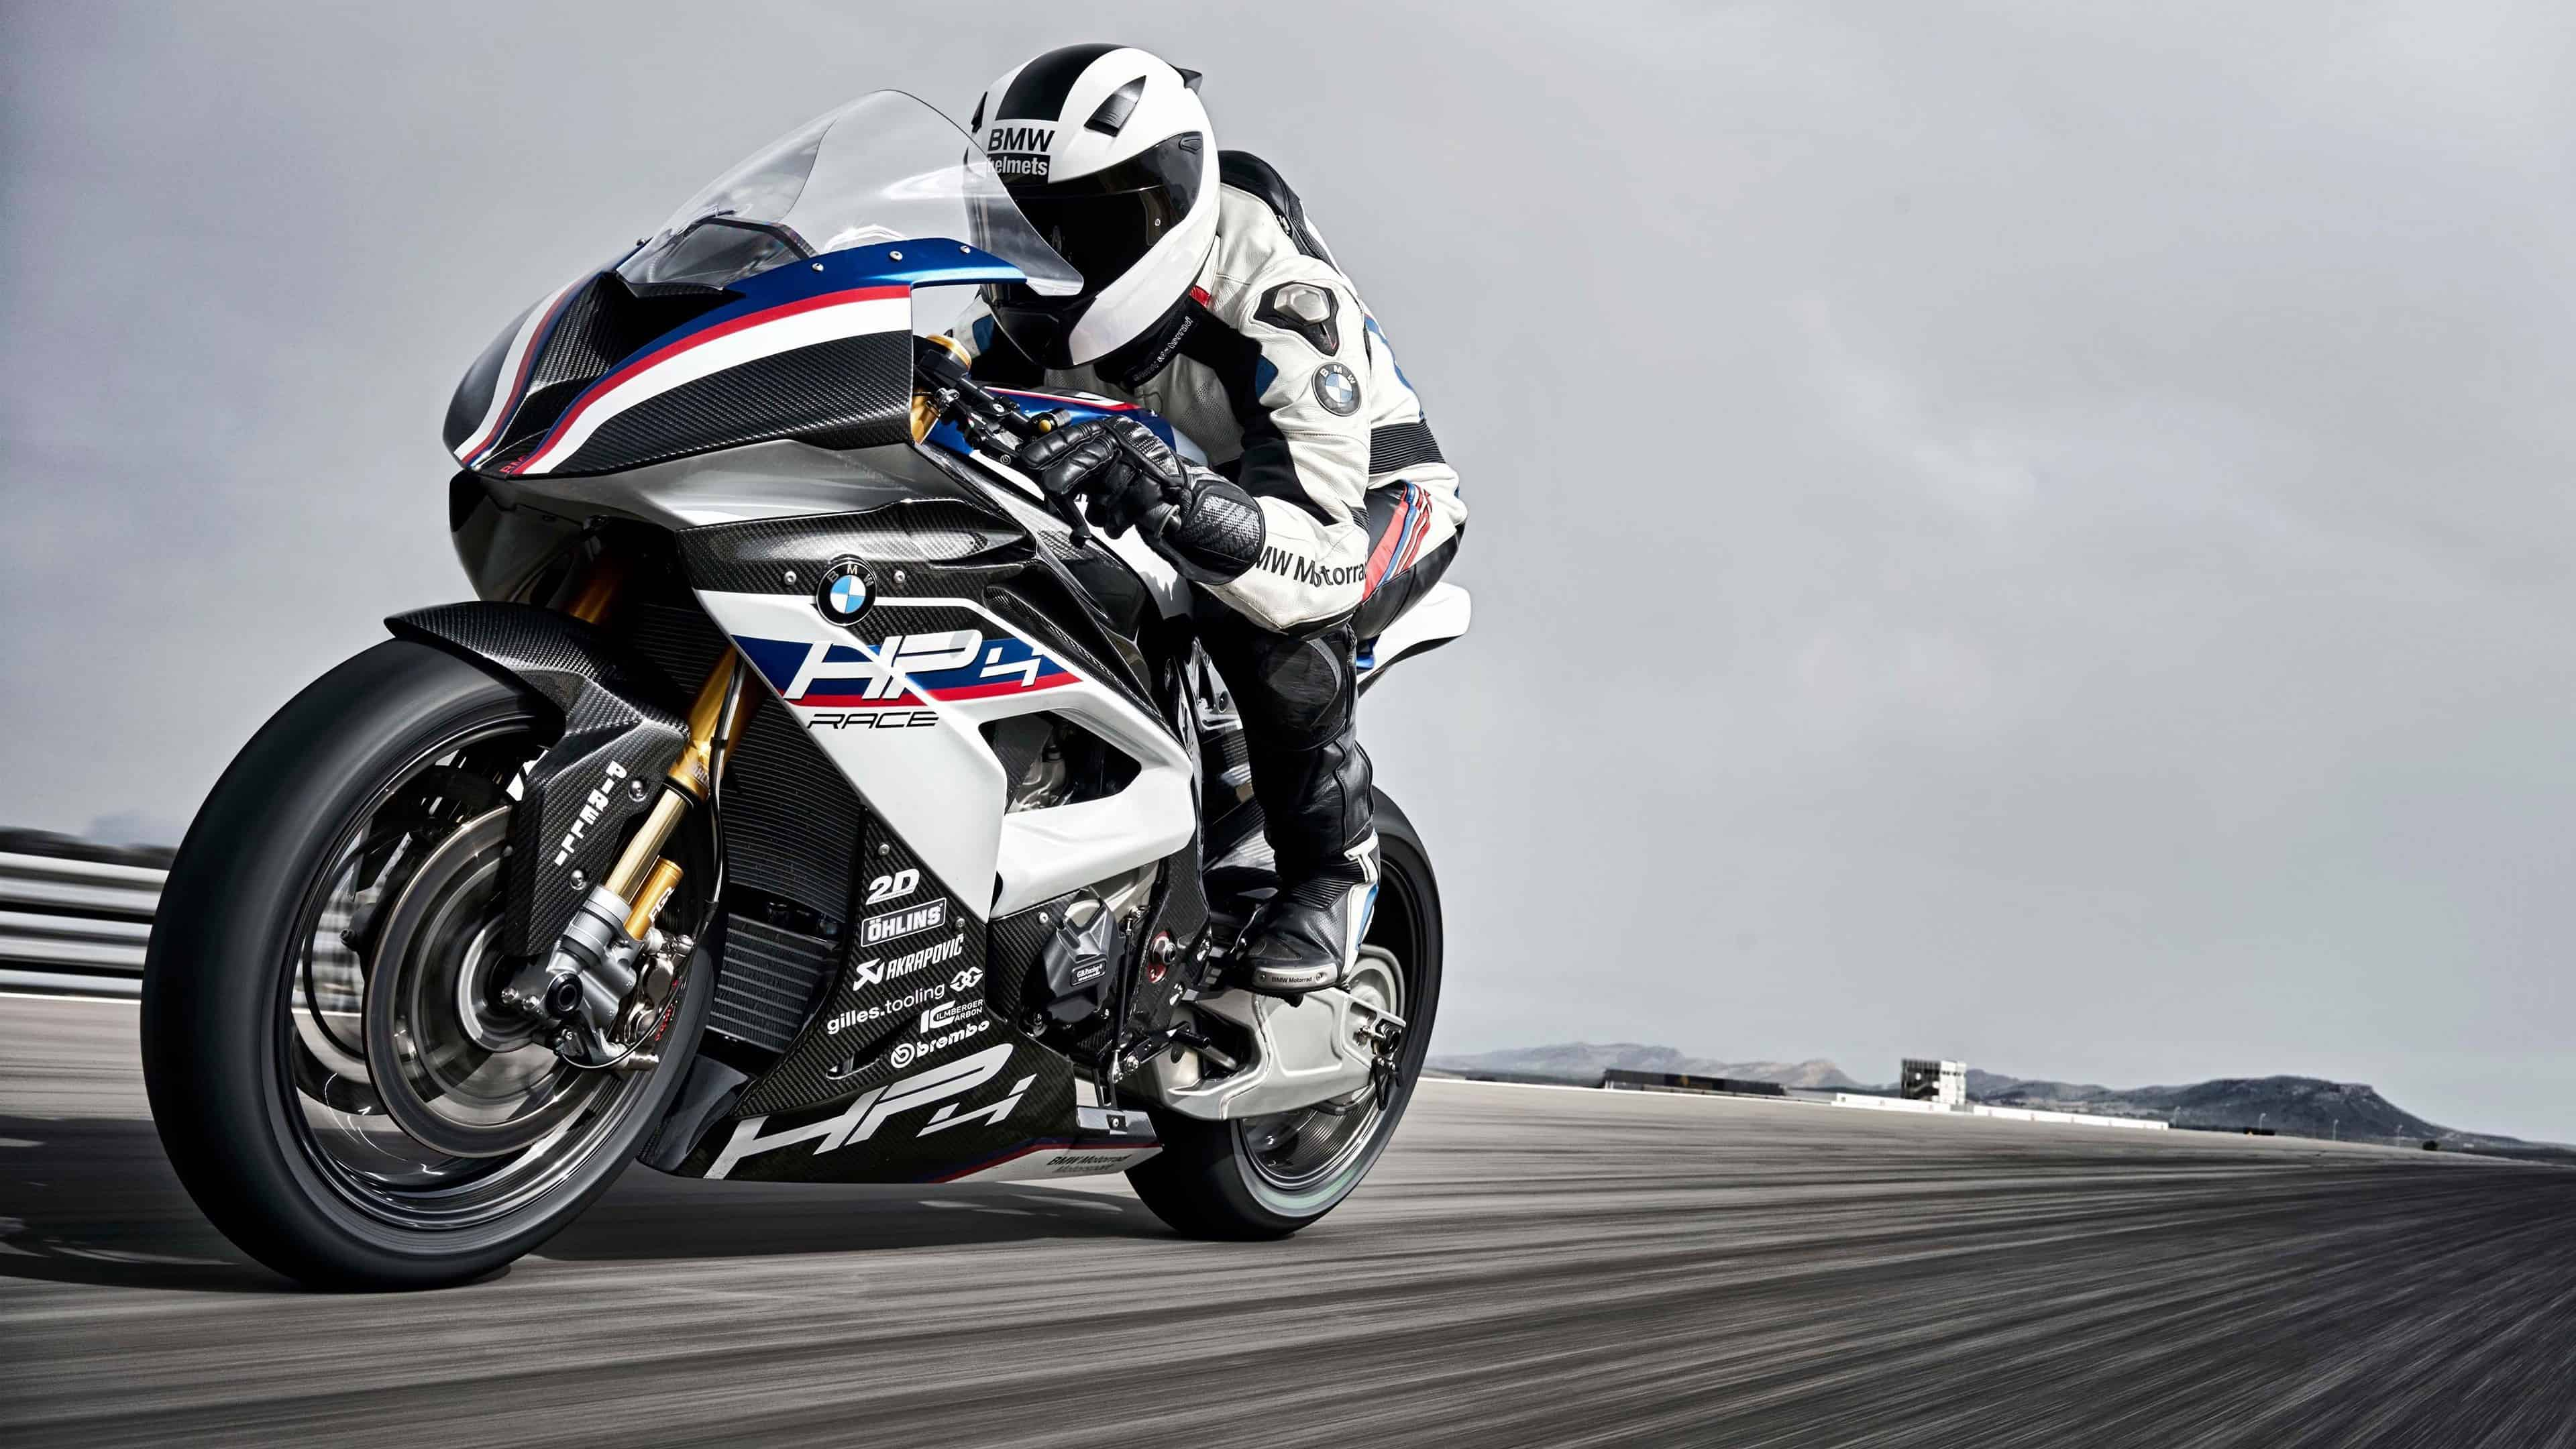 Bmw Hp4 Bike Uhd 4k Wallpaper